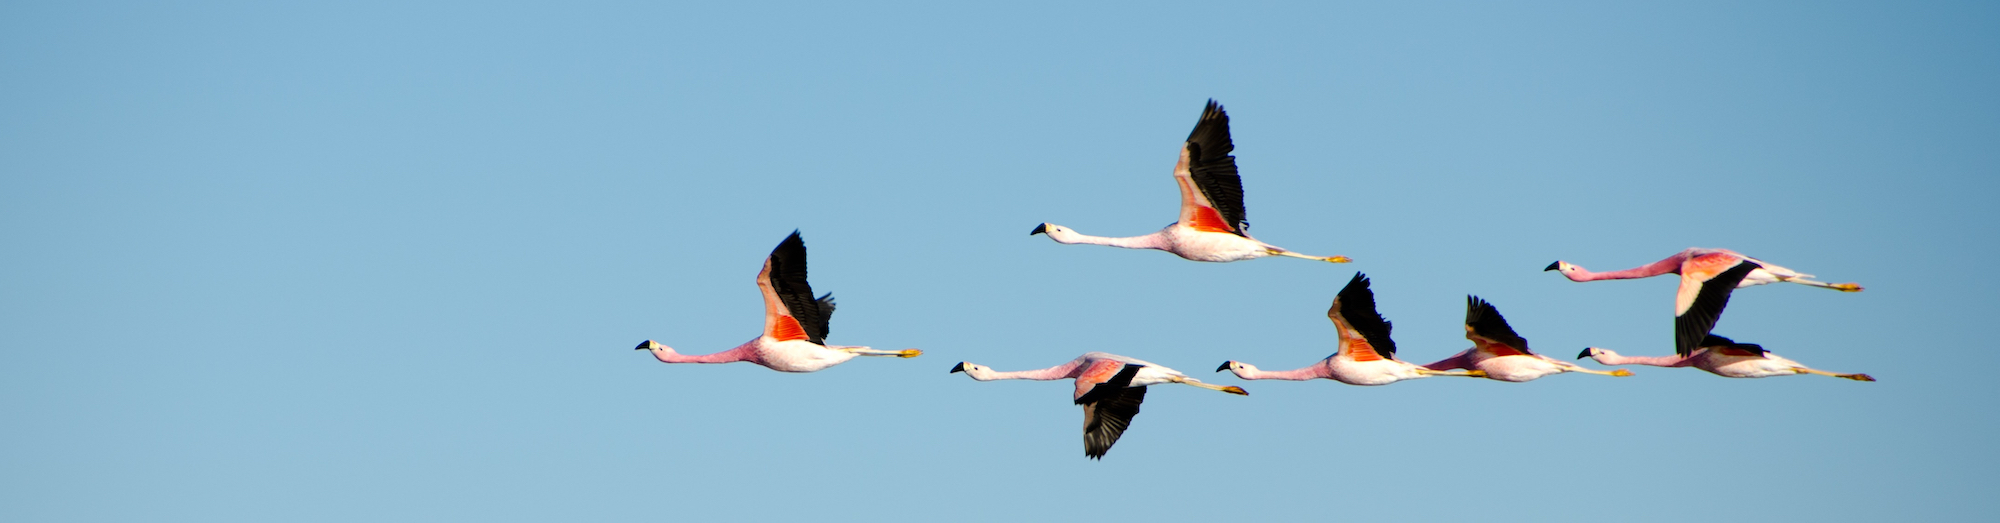 peruvian flamingoes in flight